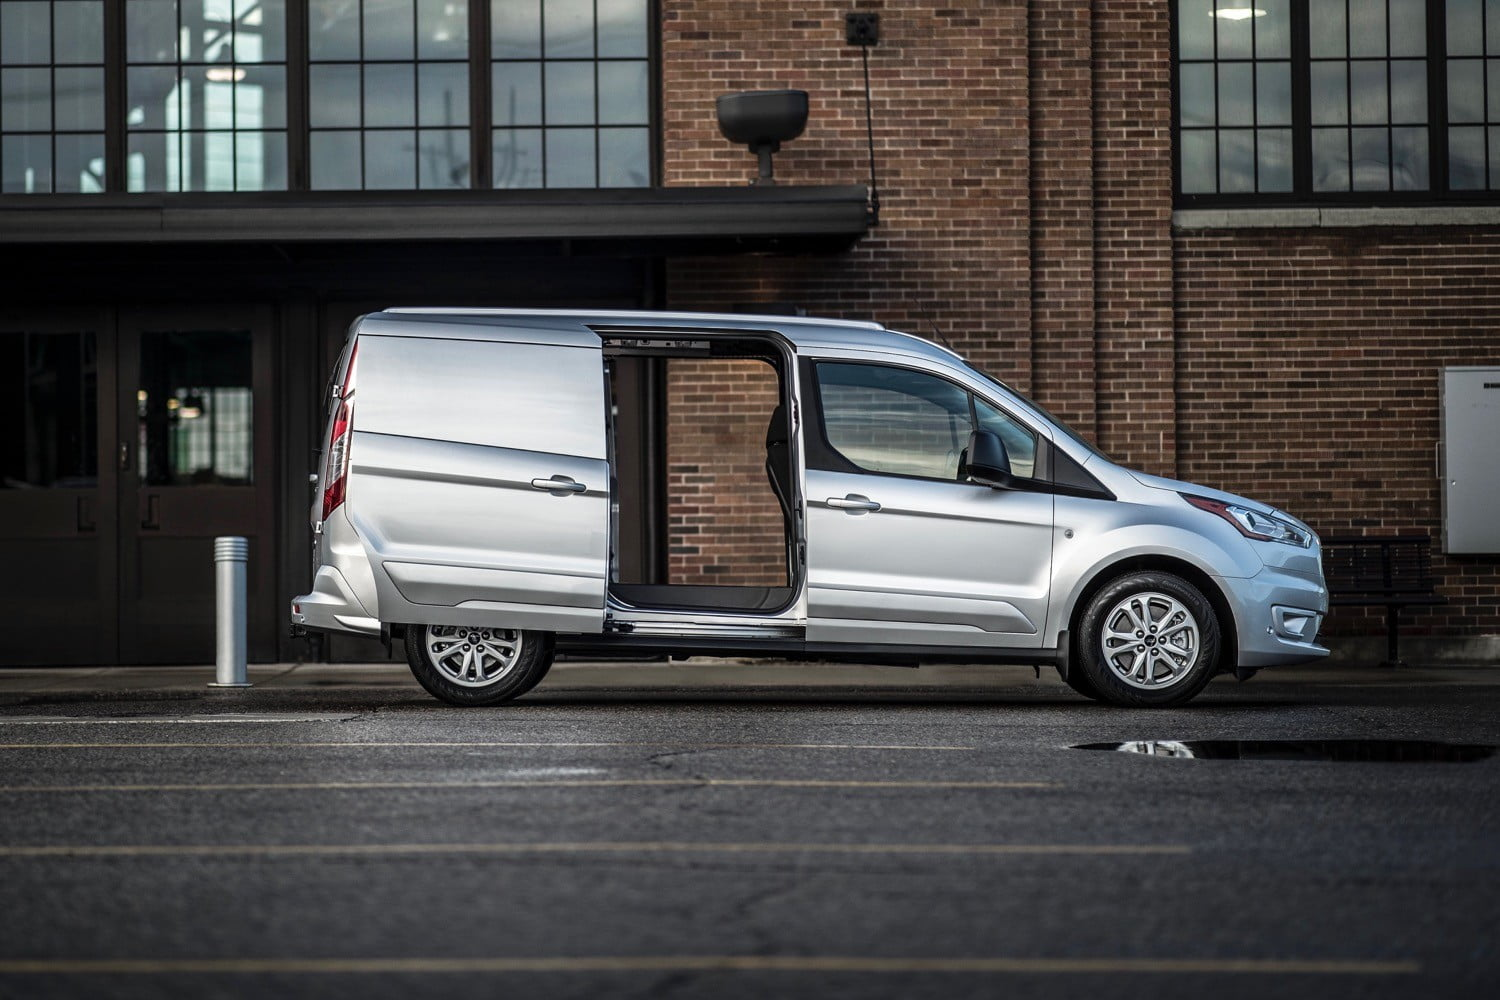 These Are The Best Cargo Vans for Small Businesses | Digital ... on 200 sf home plans, v-shaped home plans, classic home plans, three story home plans, warehouse home plans, home container house plans, engineering home plans, security home plans, handicap home plans, one-bedroom cottage home plans, survival home plans, american dream home plans, isbu home plans, sears home plans, gooseneck home plans, multi family home plans, bad home plans, new country home plans, 5 bed home plans, trailer home plans,